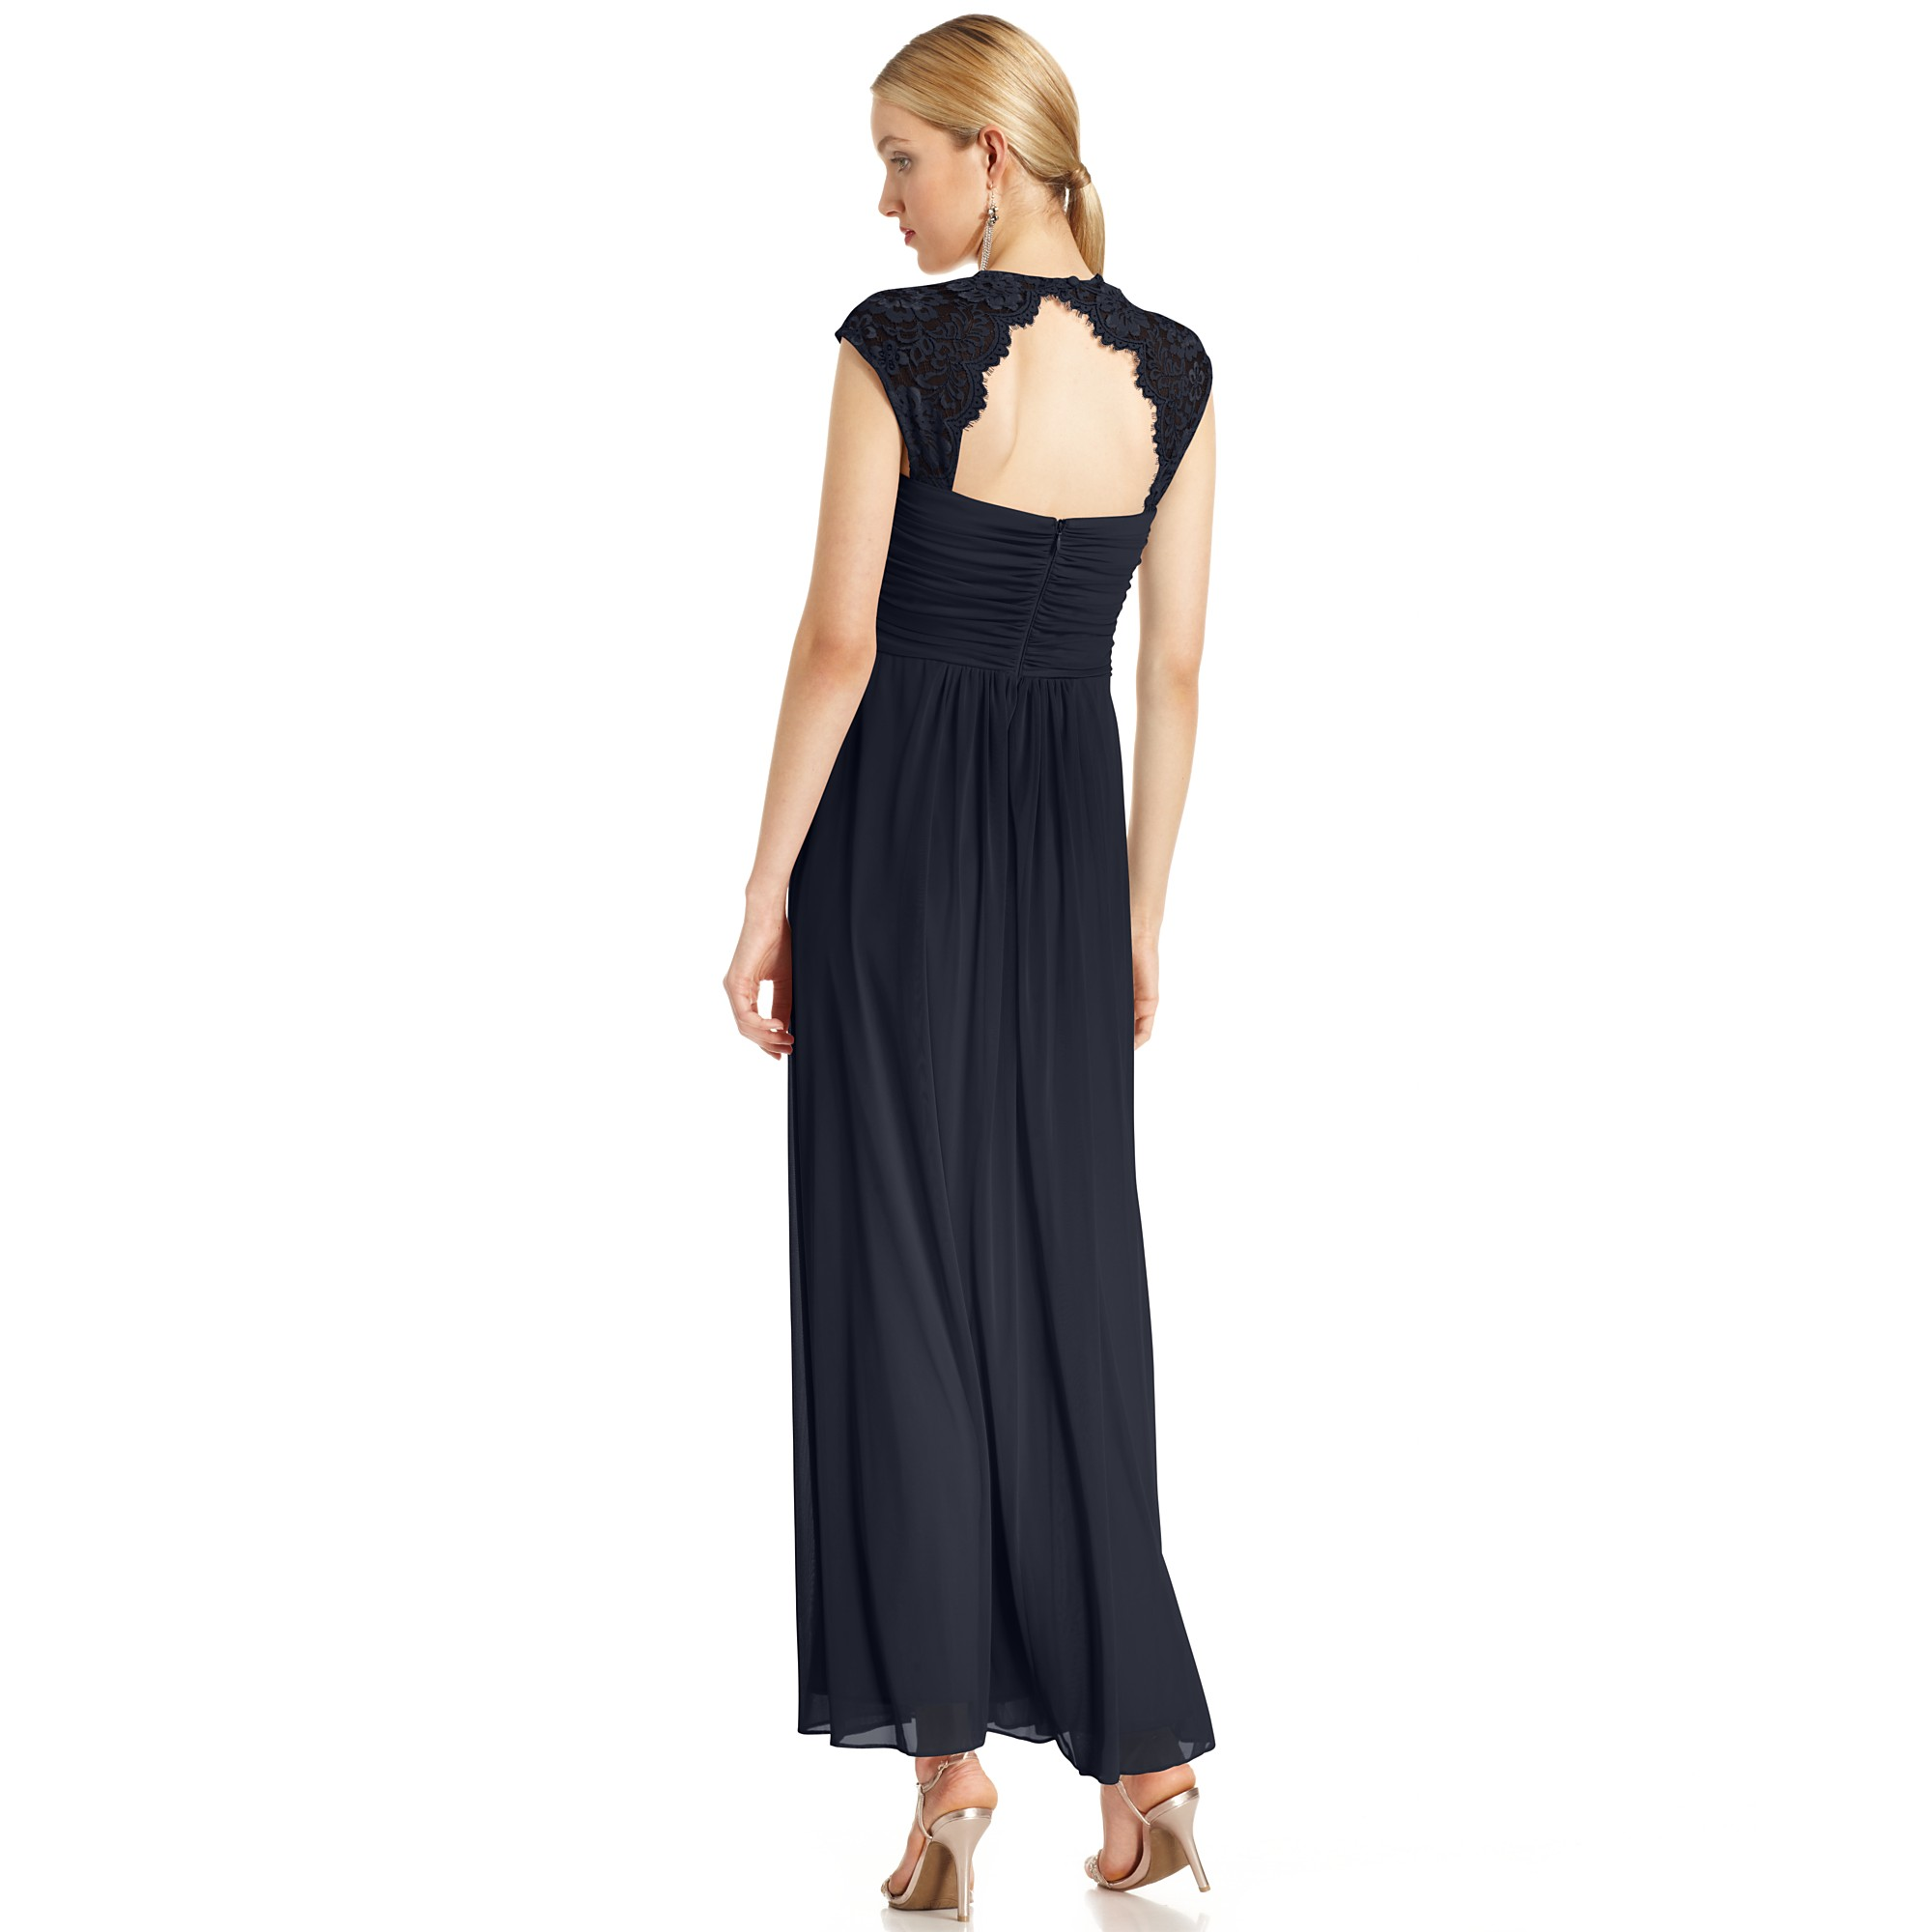 Lyst - Xscape Xscape Dress Capsleeve Lace Ruched Gown in Blue